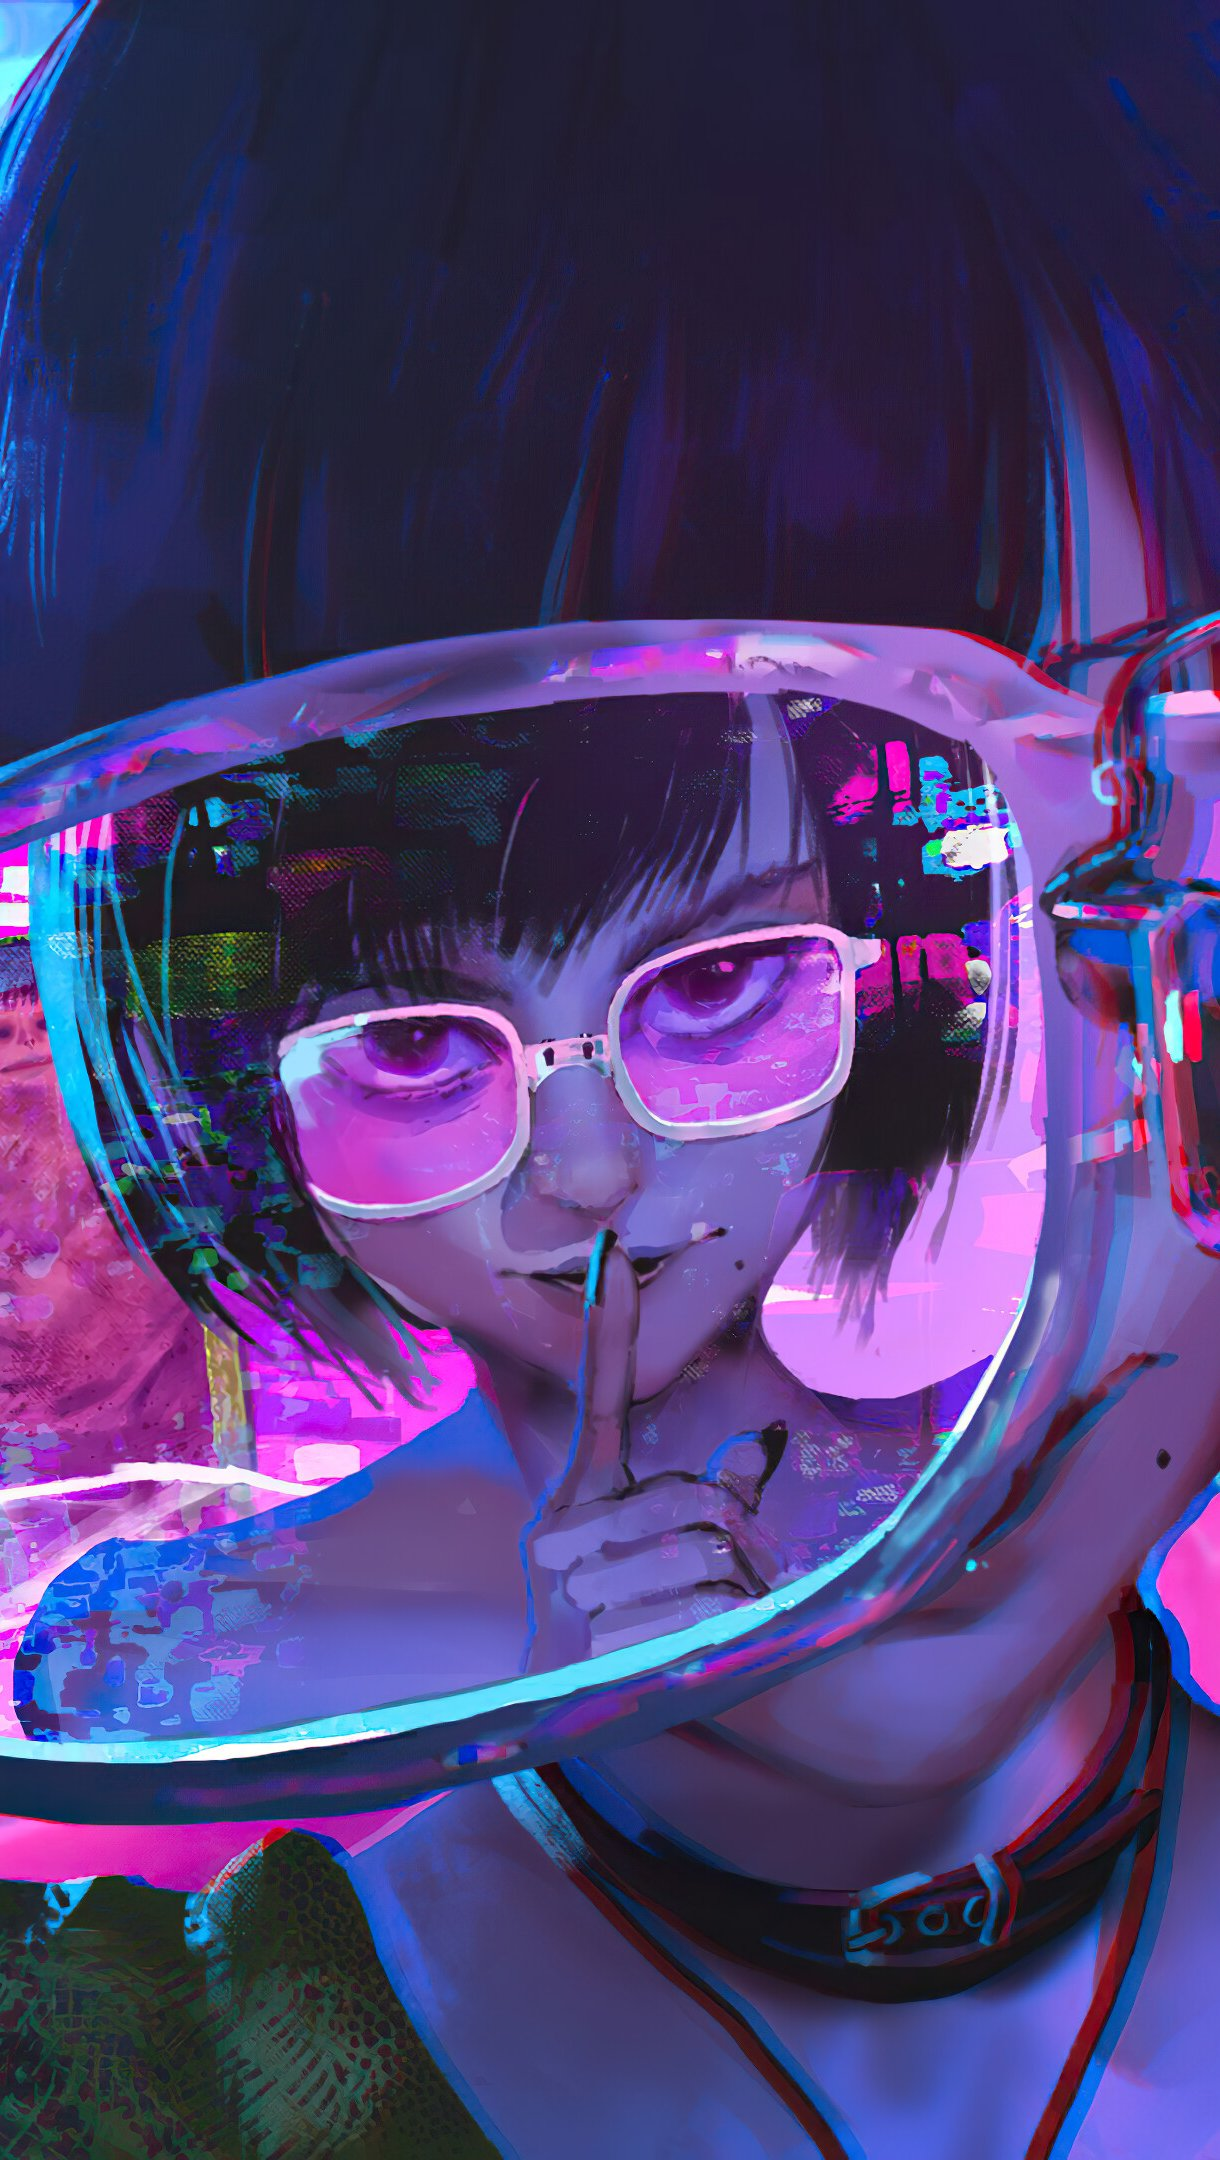 Cyberpunk Girl Thrugh Glasses Wallpaper 4k Ultra Hd Id 5406